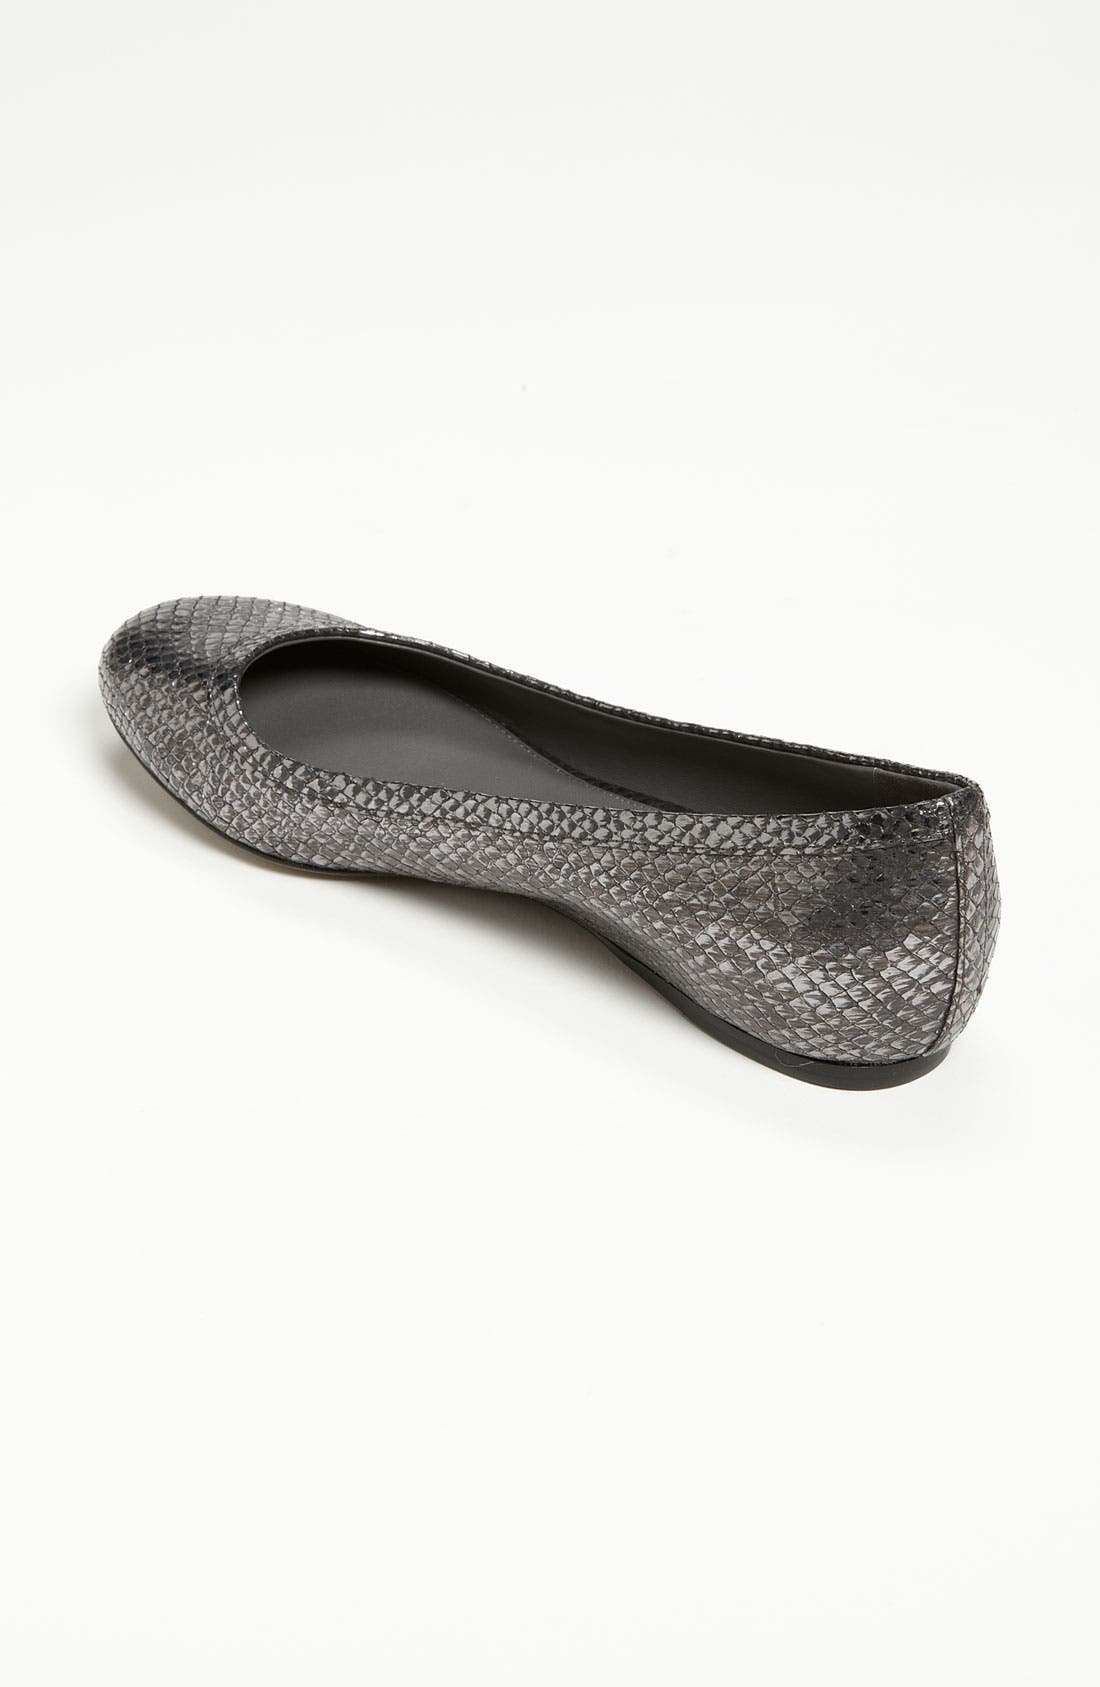 Alternate Image 2  - Vera Wang Footwear 'Hillary' Flat